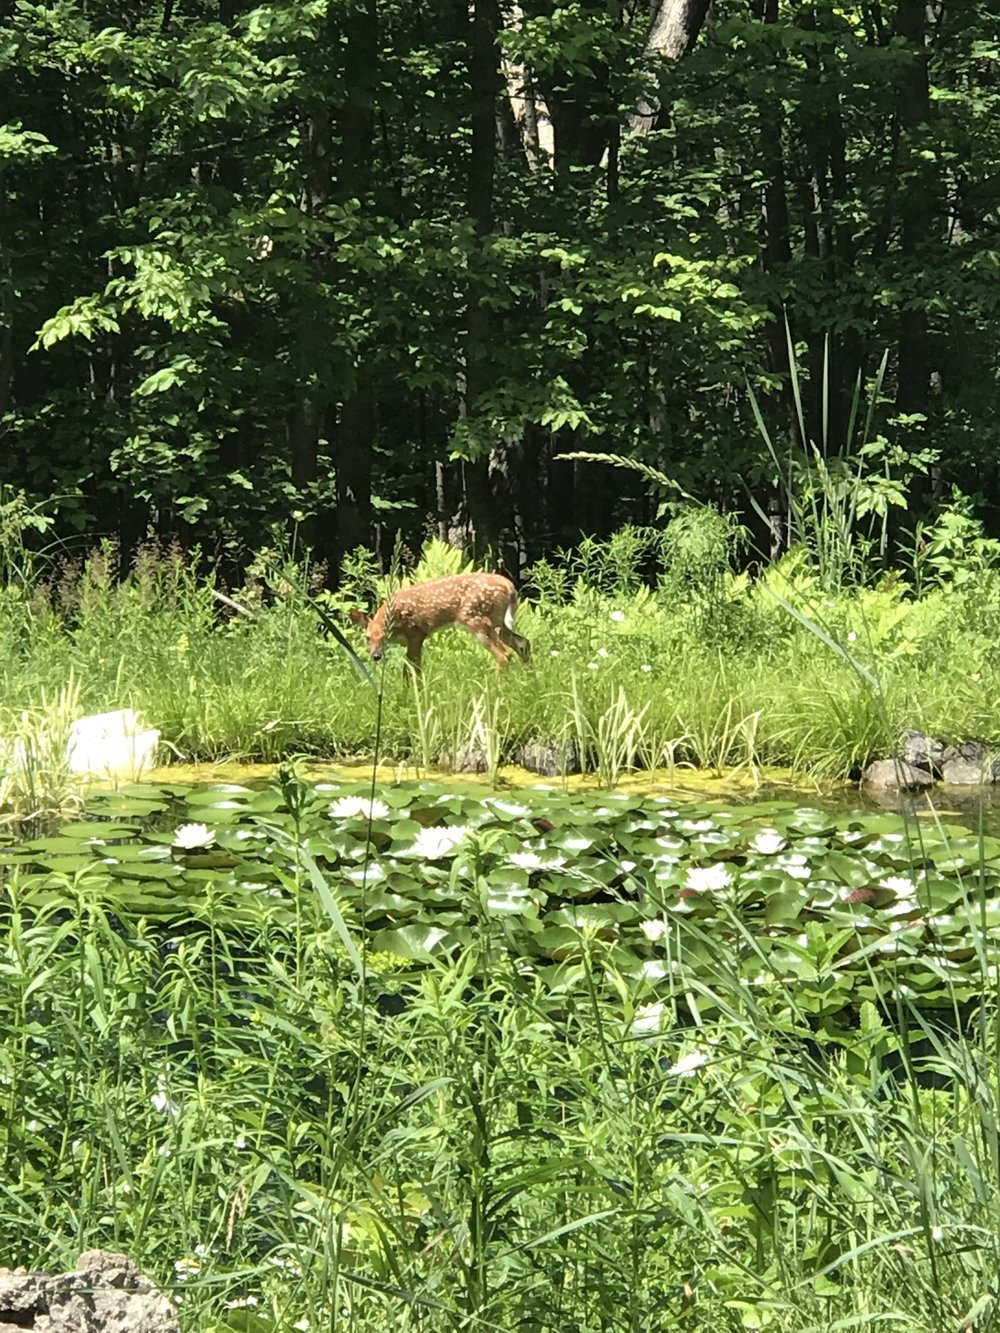 Keeping the natural watershed is important to all of us, even the deer!